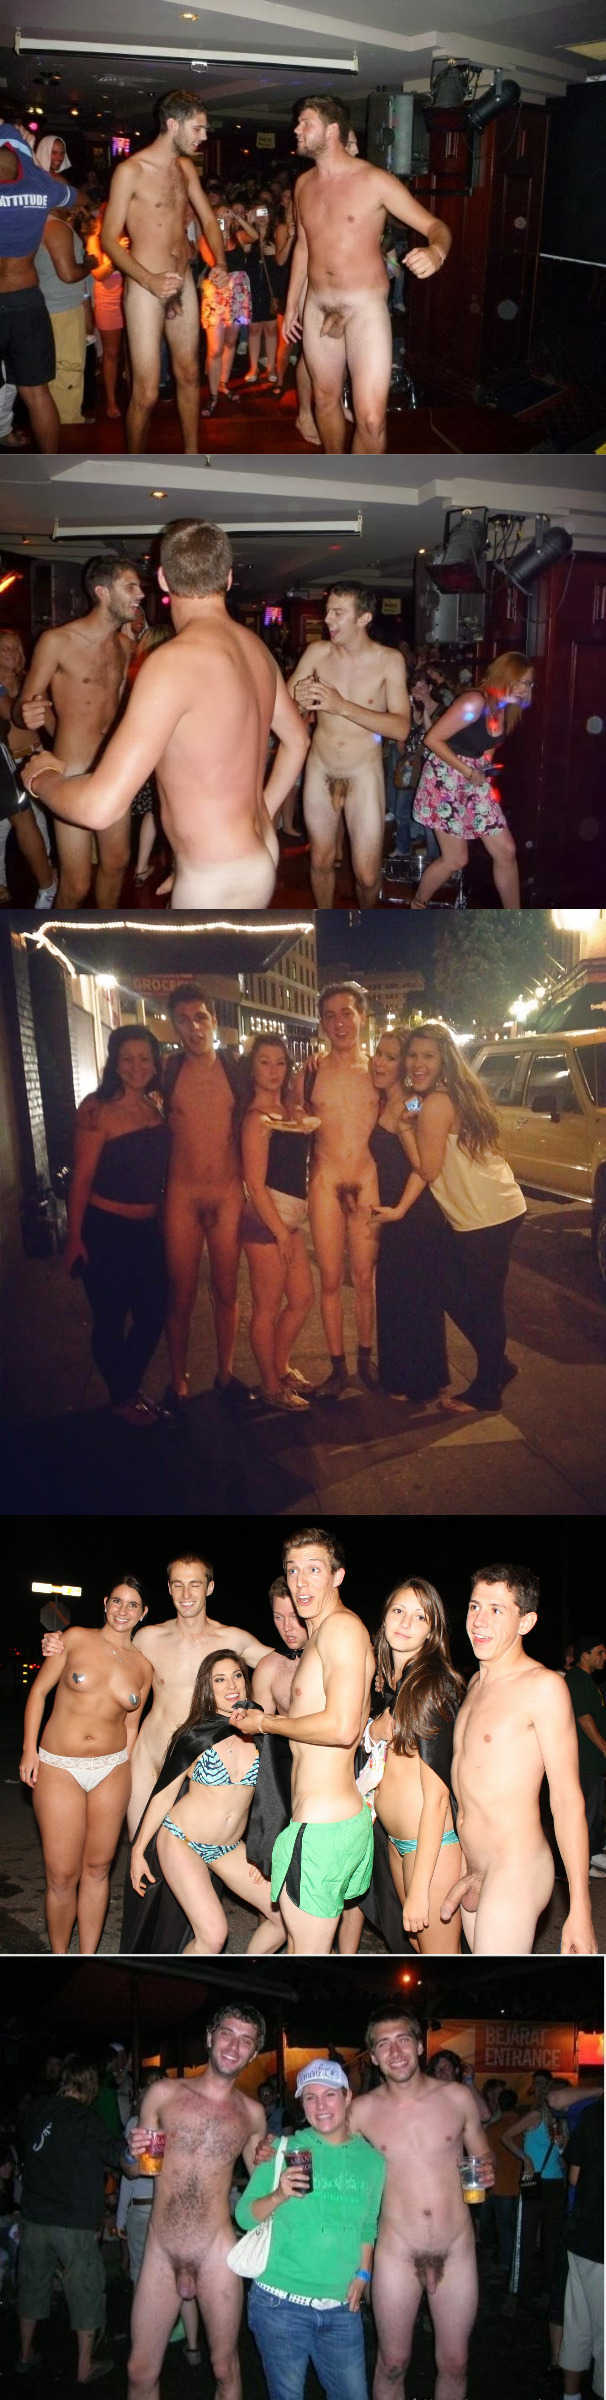 guys partying naked with clothed girls